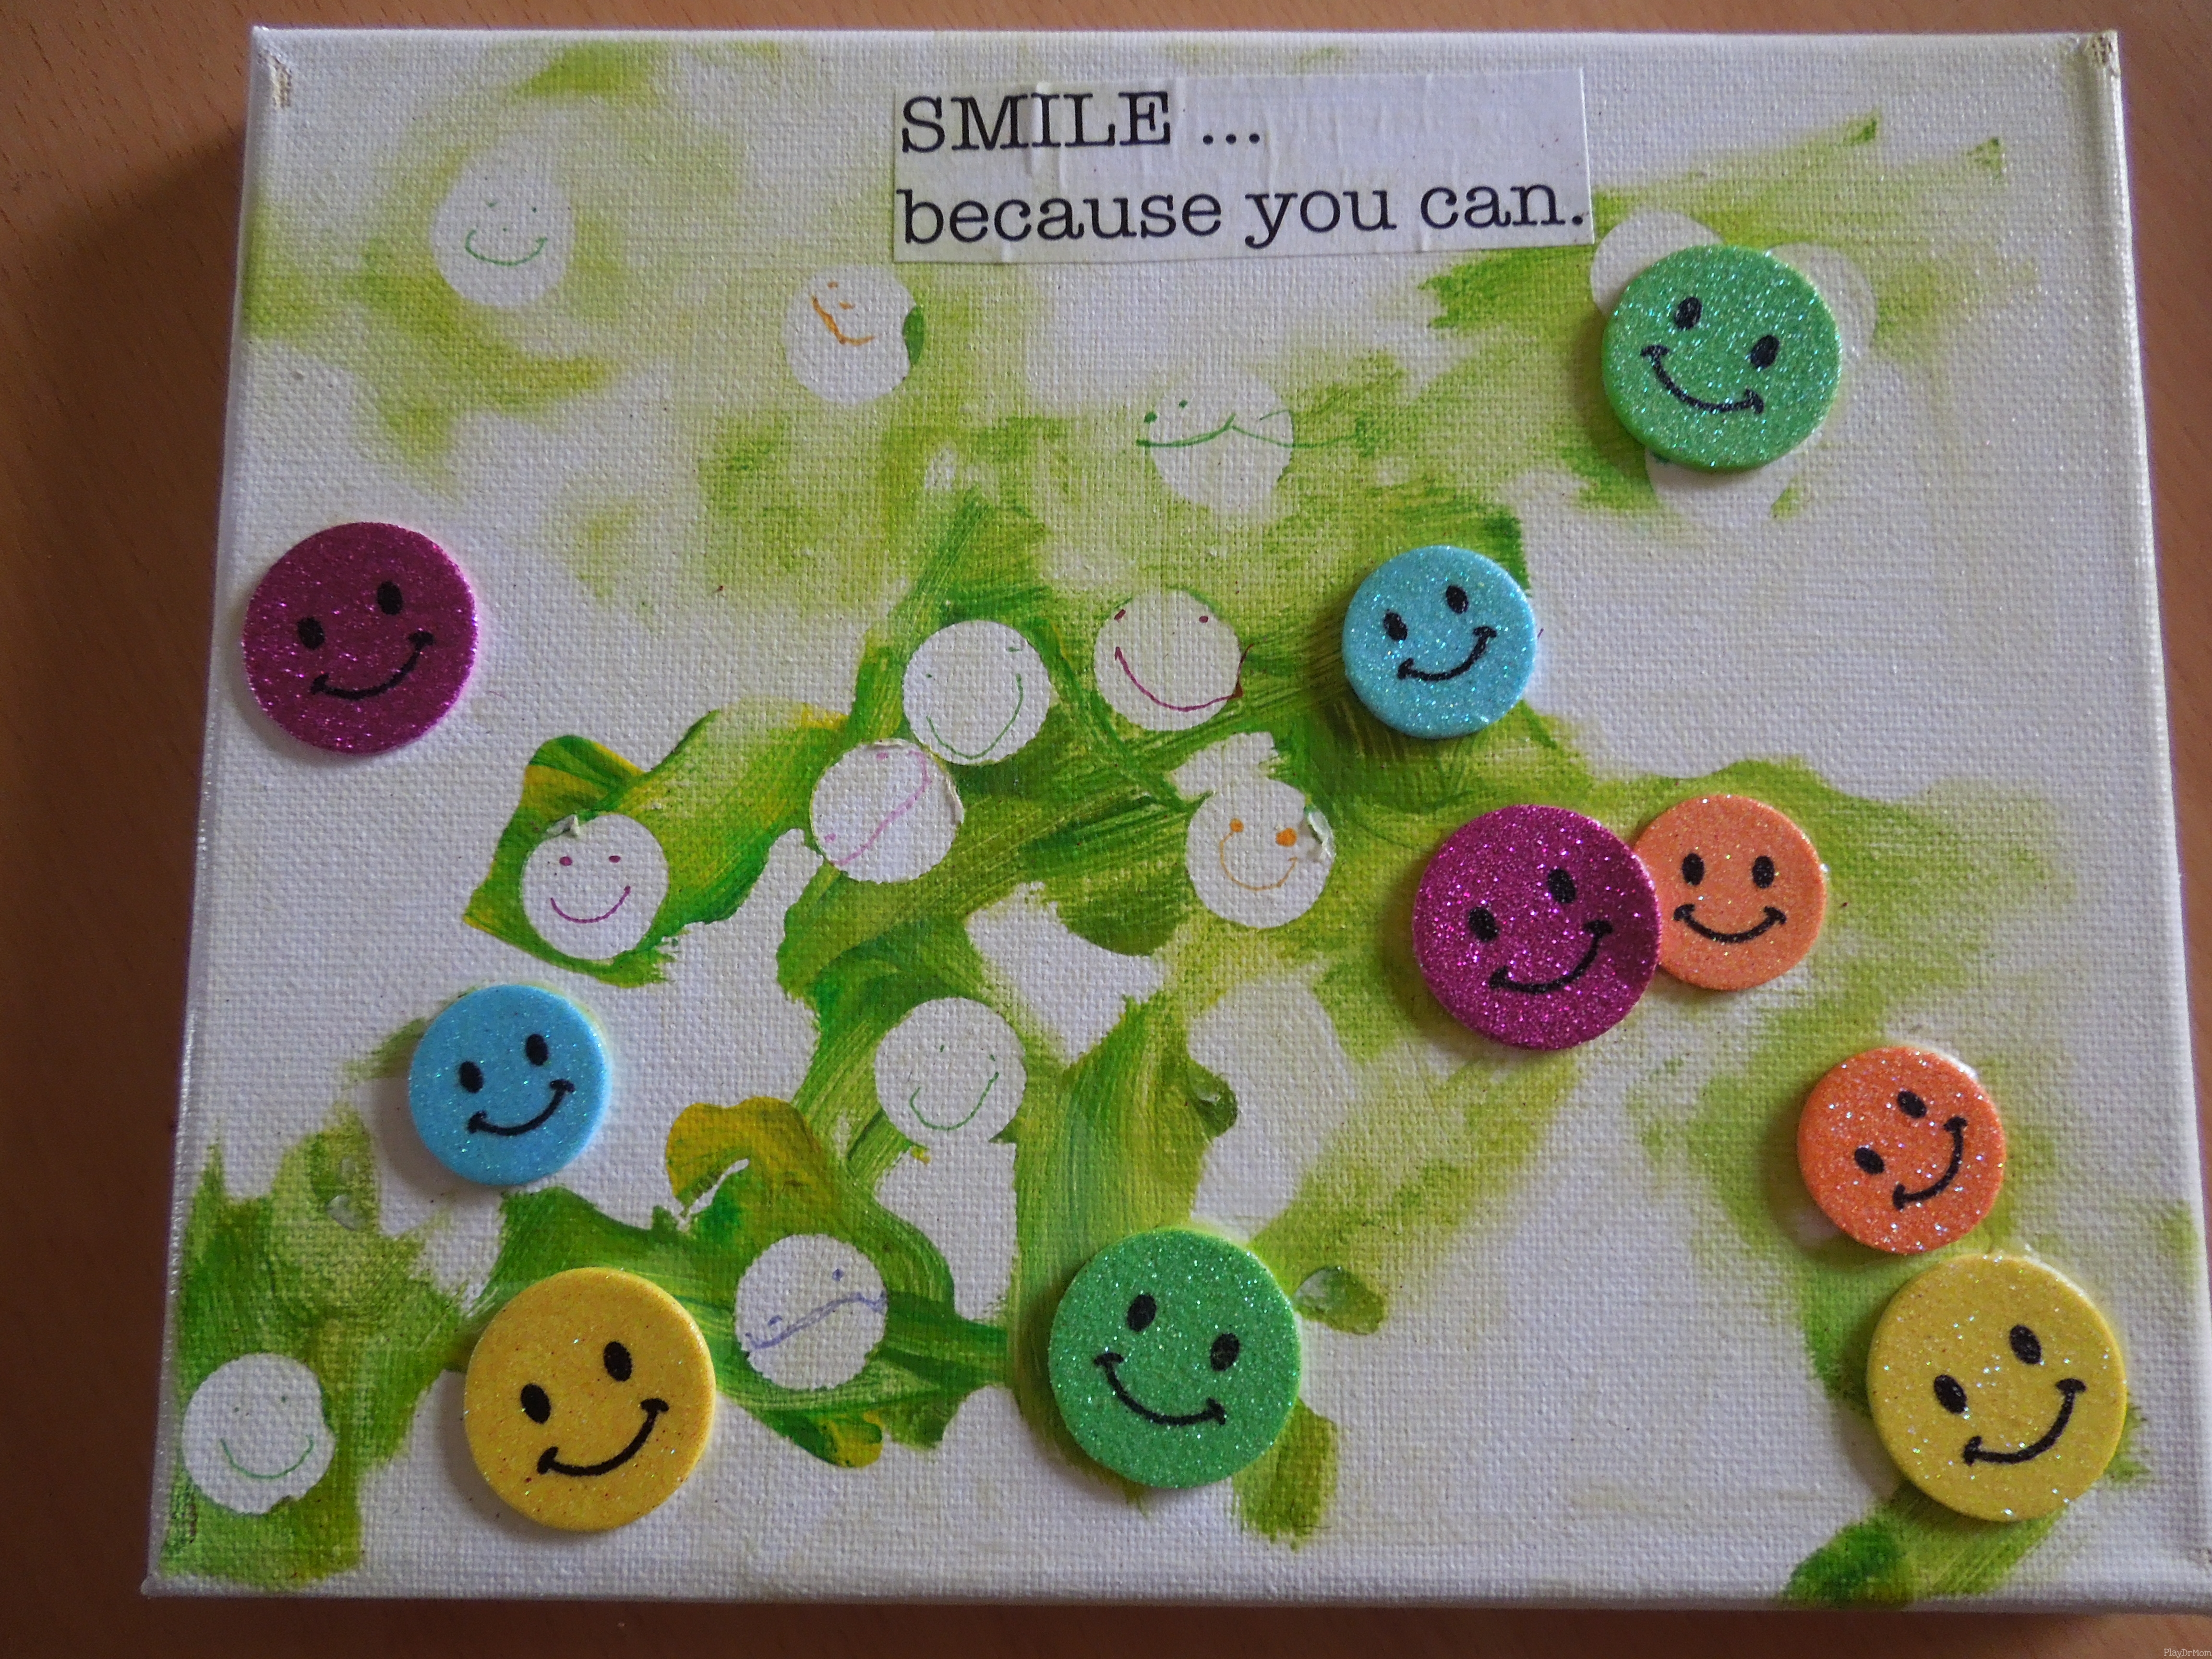 SMILE ... because you can.